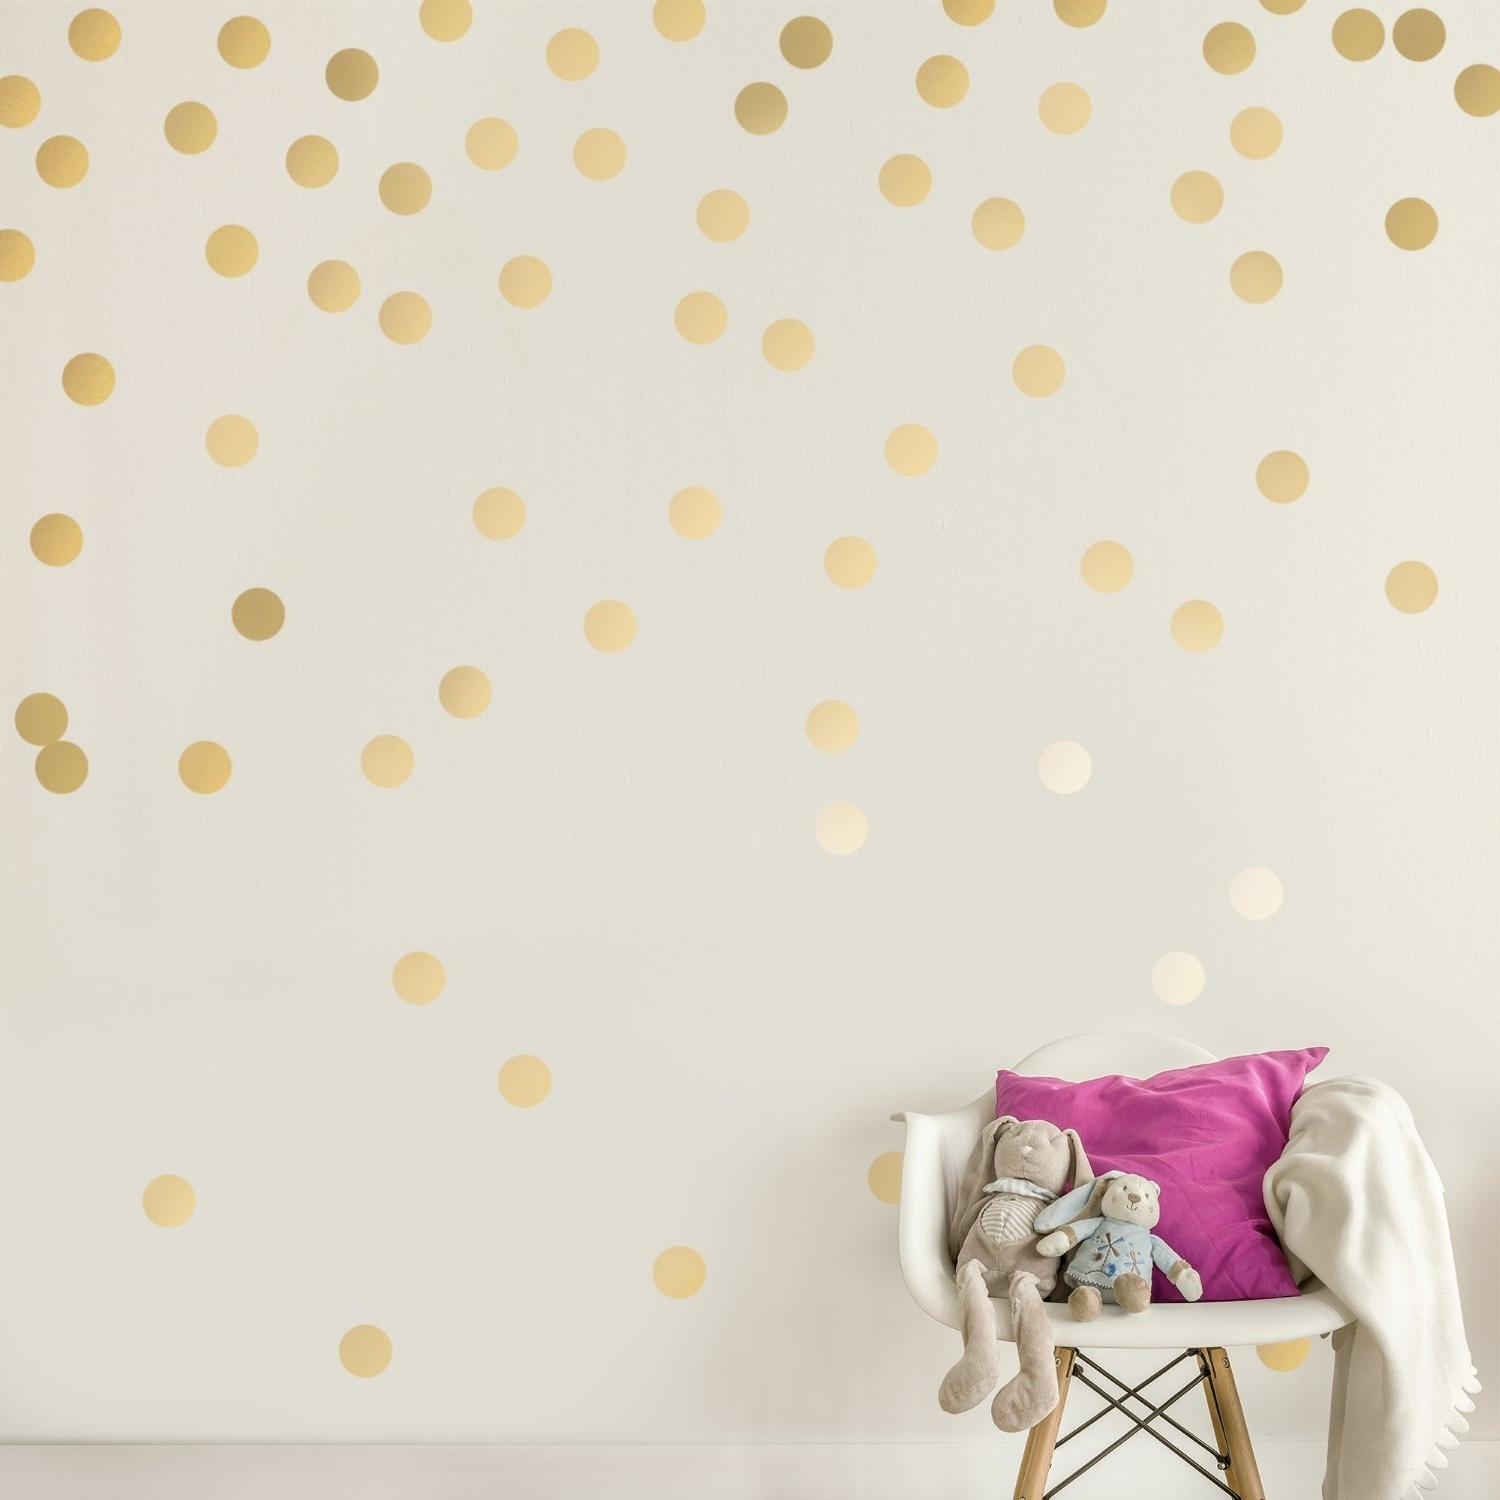 Cheap Black Tree Decals For Walls, Find Black Tree Decals For Regarding Most Recently Released Gold Wall Art Stickers (View 14 of 15)